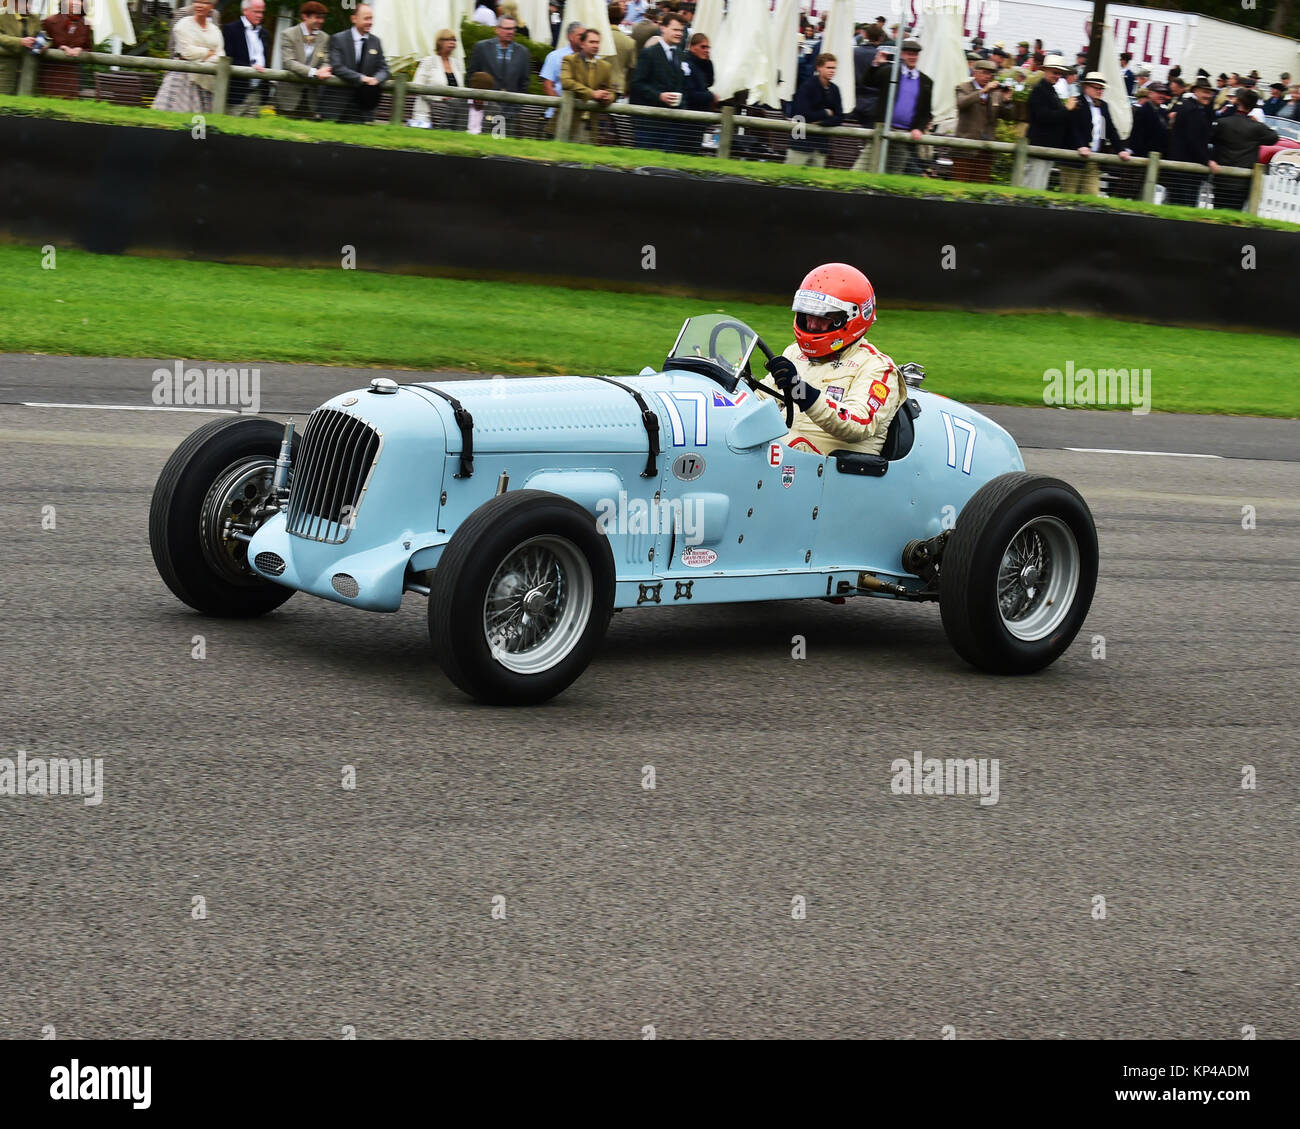 Barrie Williams, Parnell-MG, Whizzo, Goodwood Revival 2015, 50's, 2015, Chris McEvoy, CJM Photography, classic cars, Stock Photo